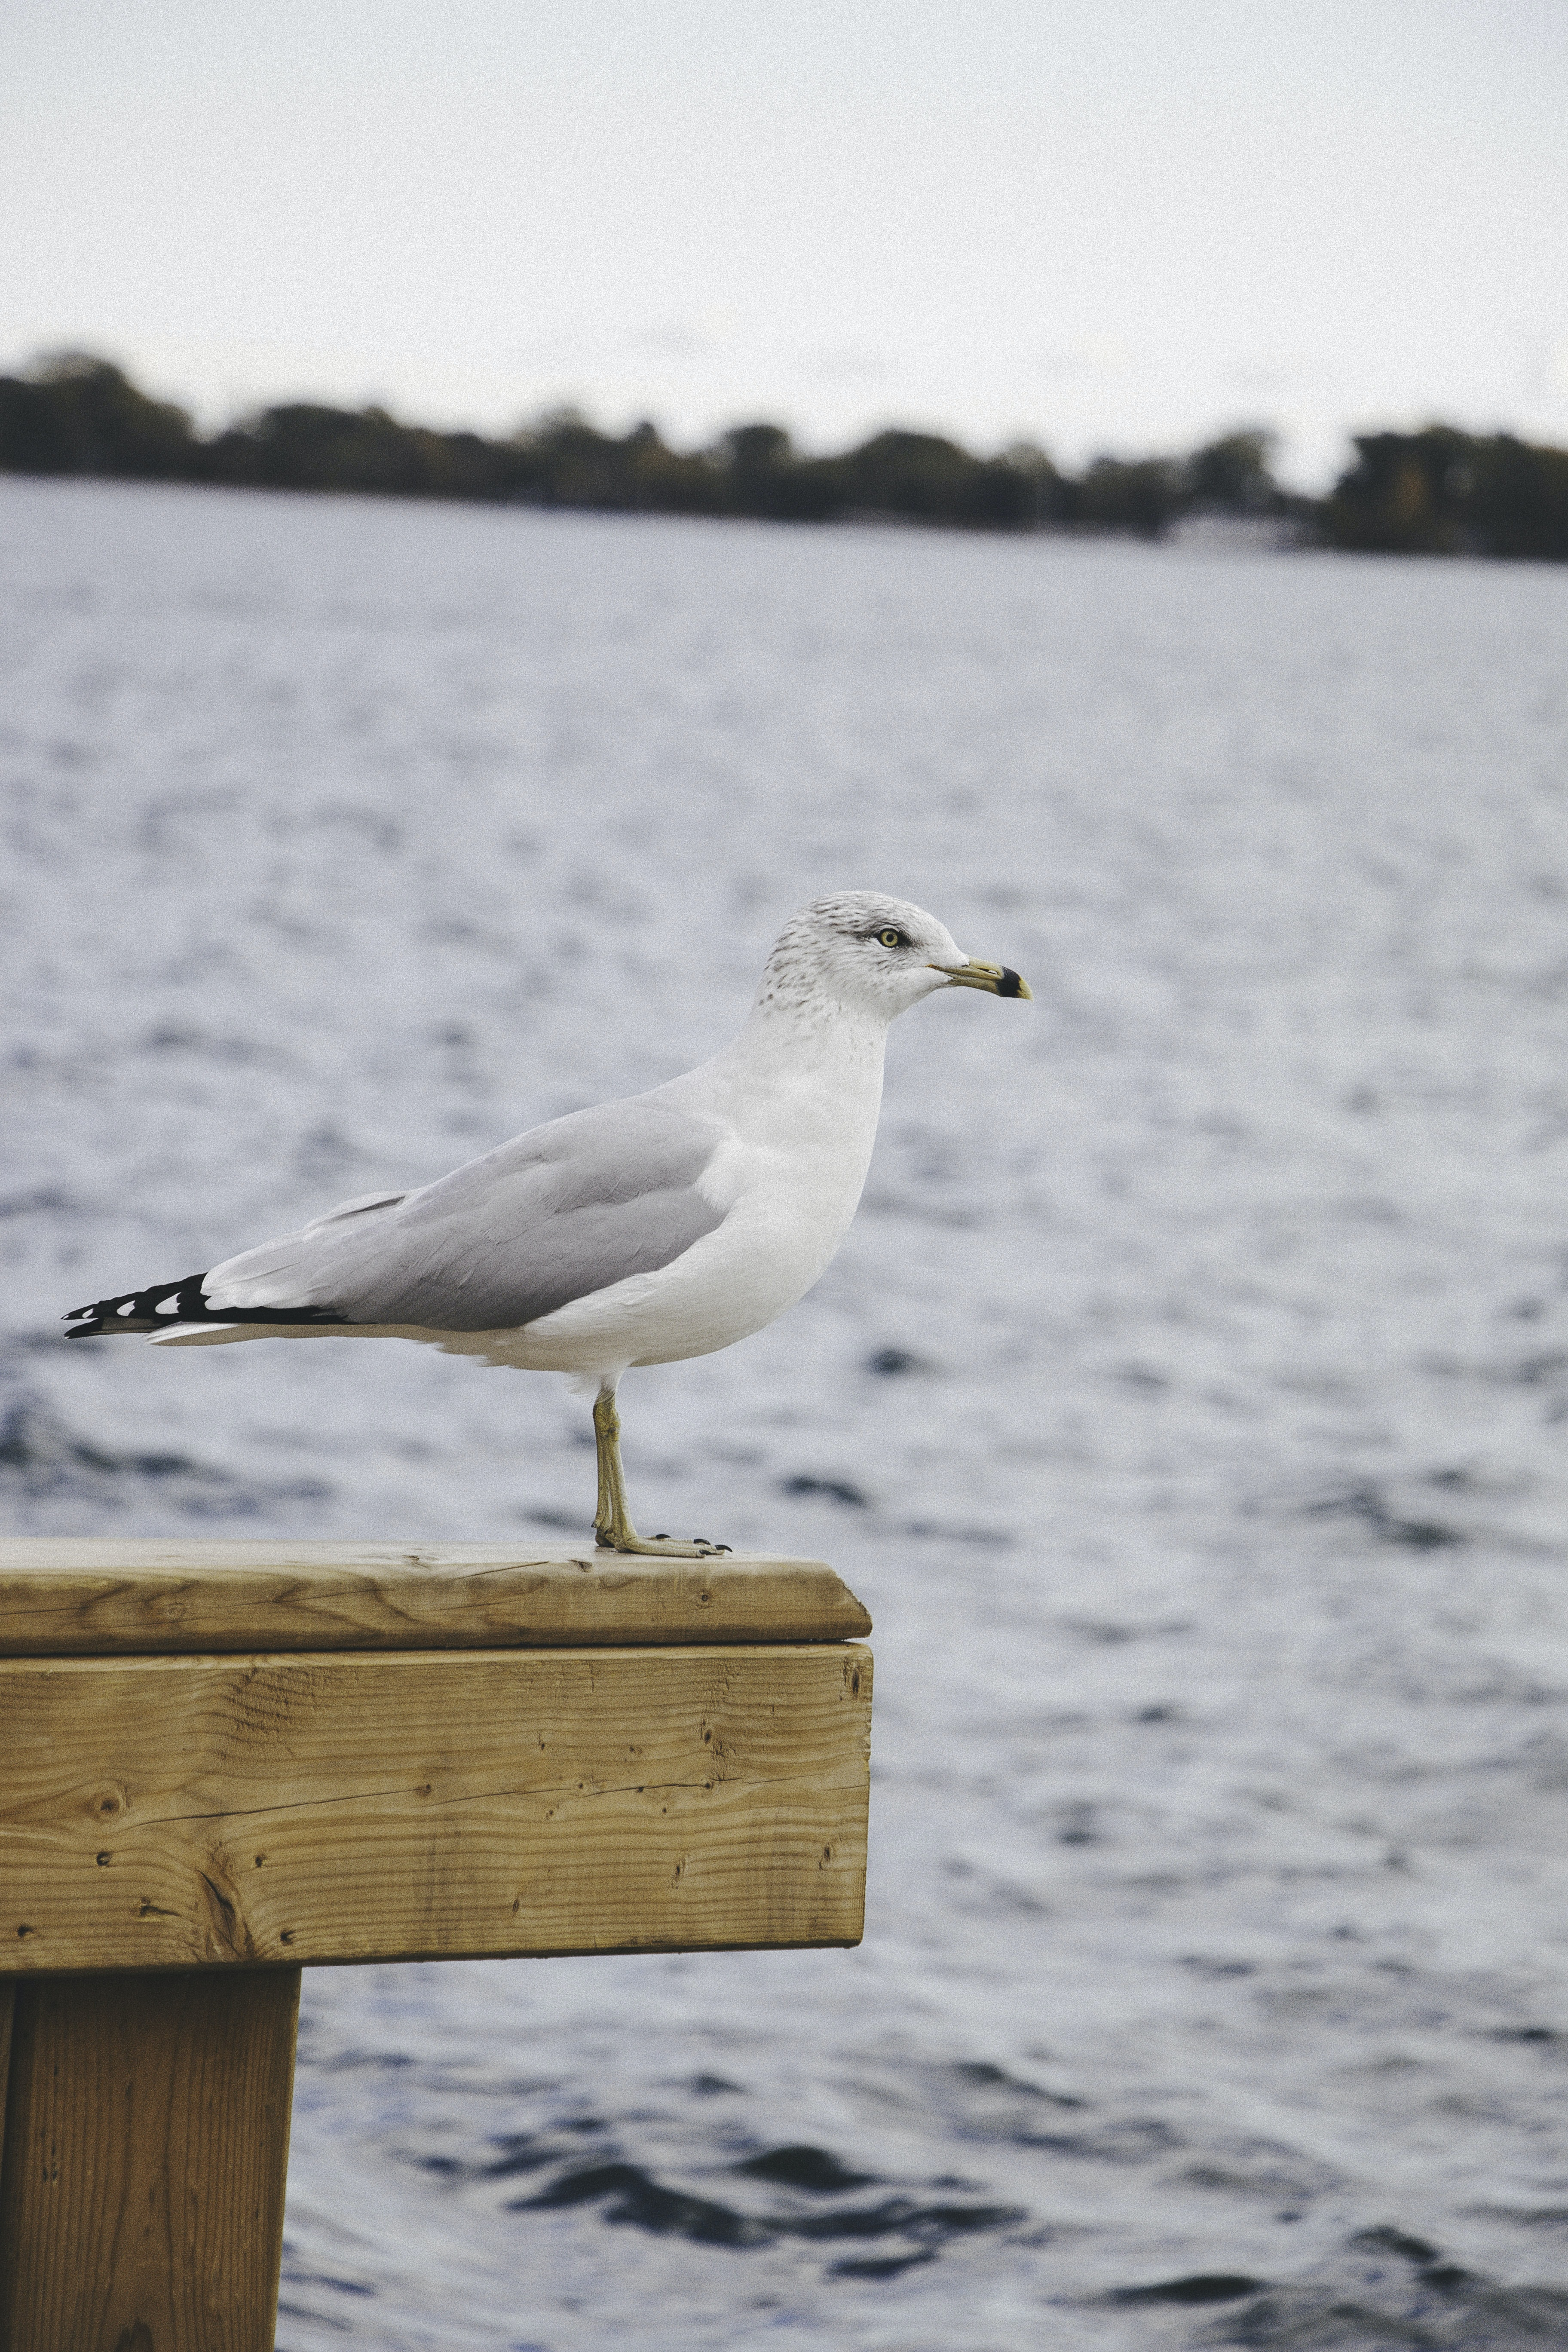 white and gray seagull standing on brown wooden plank